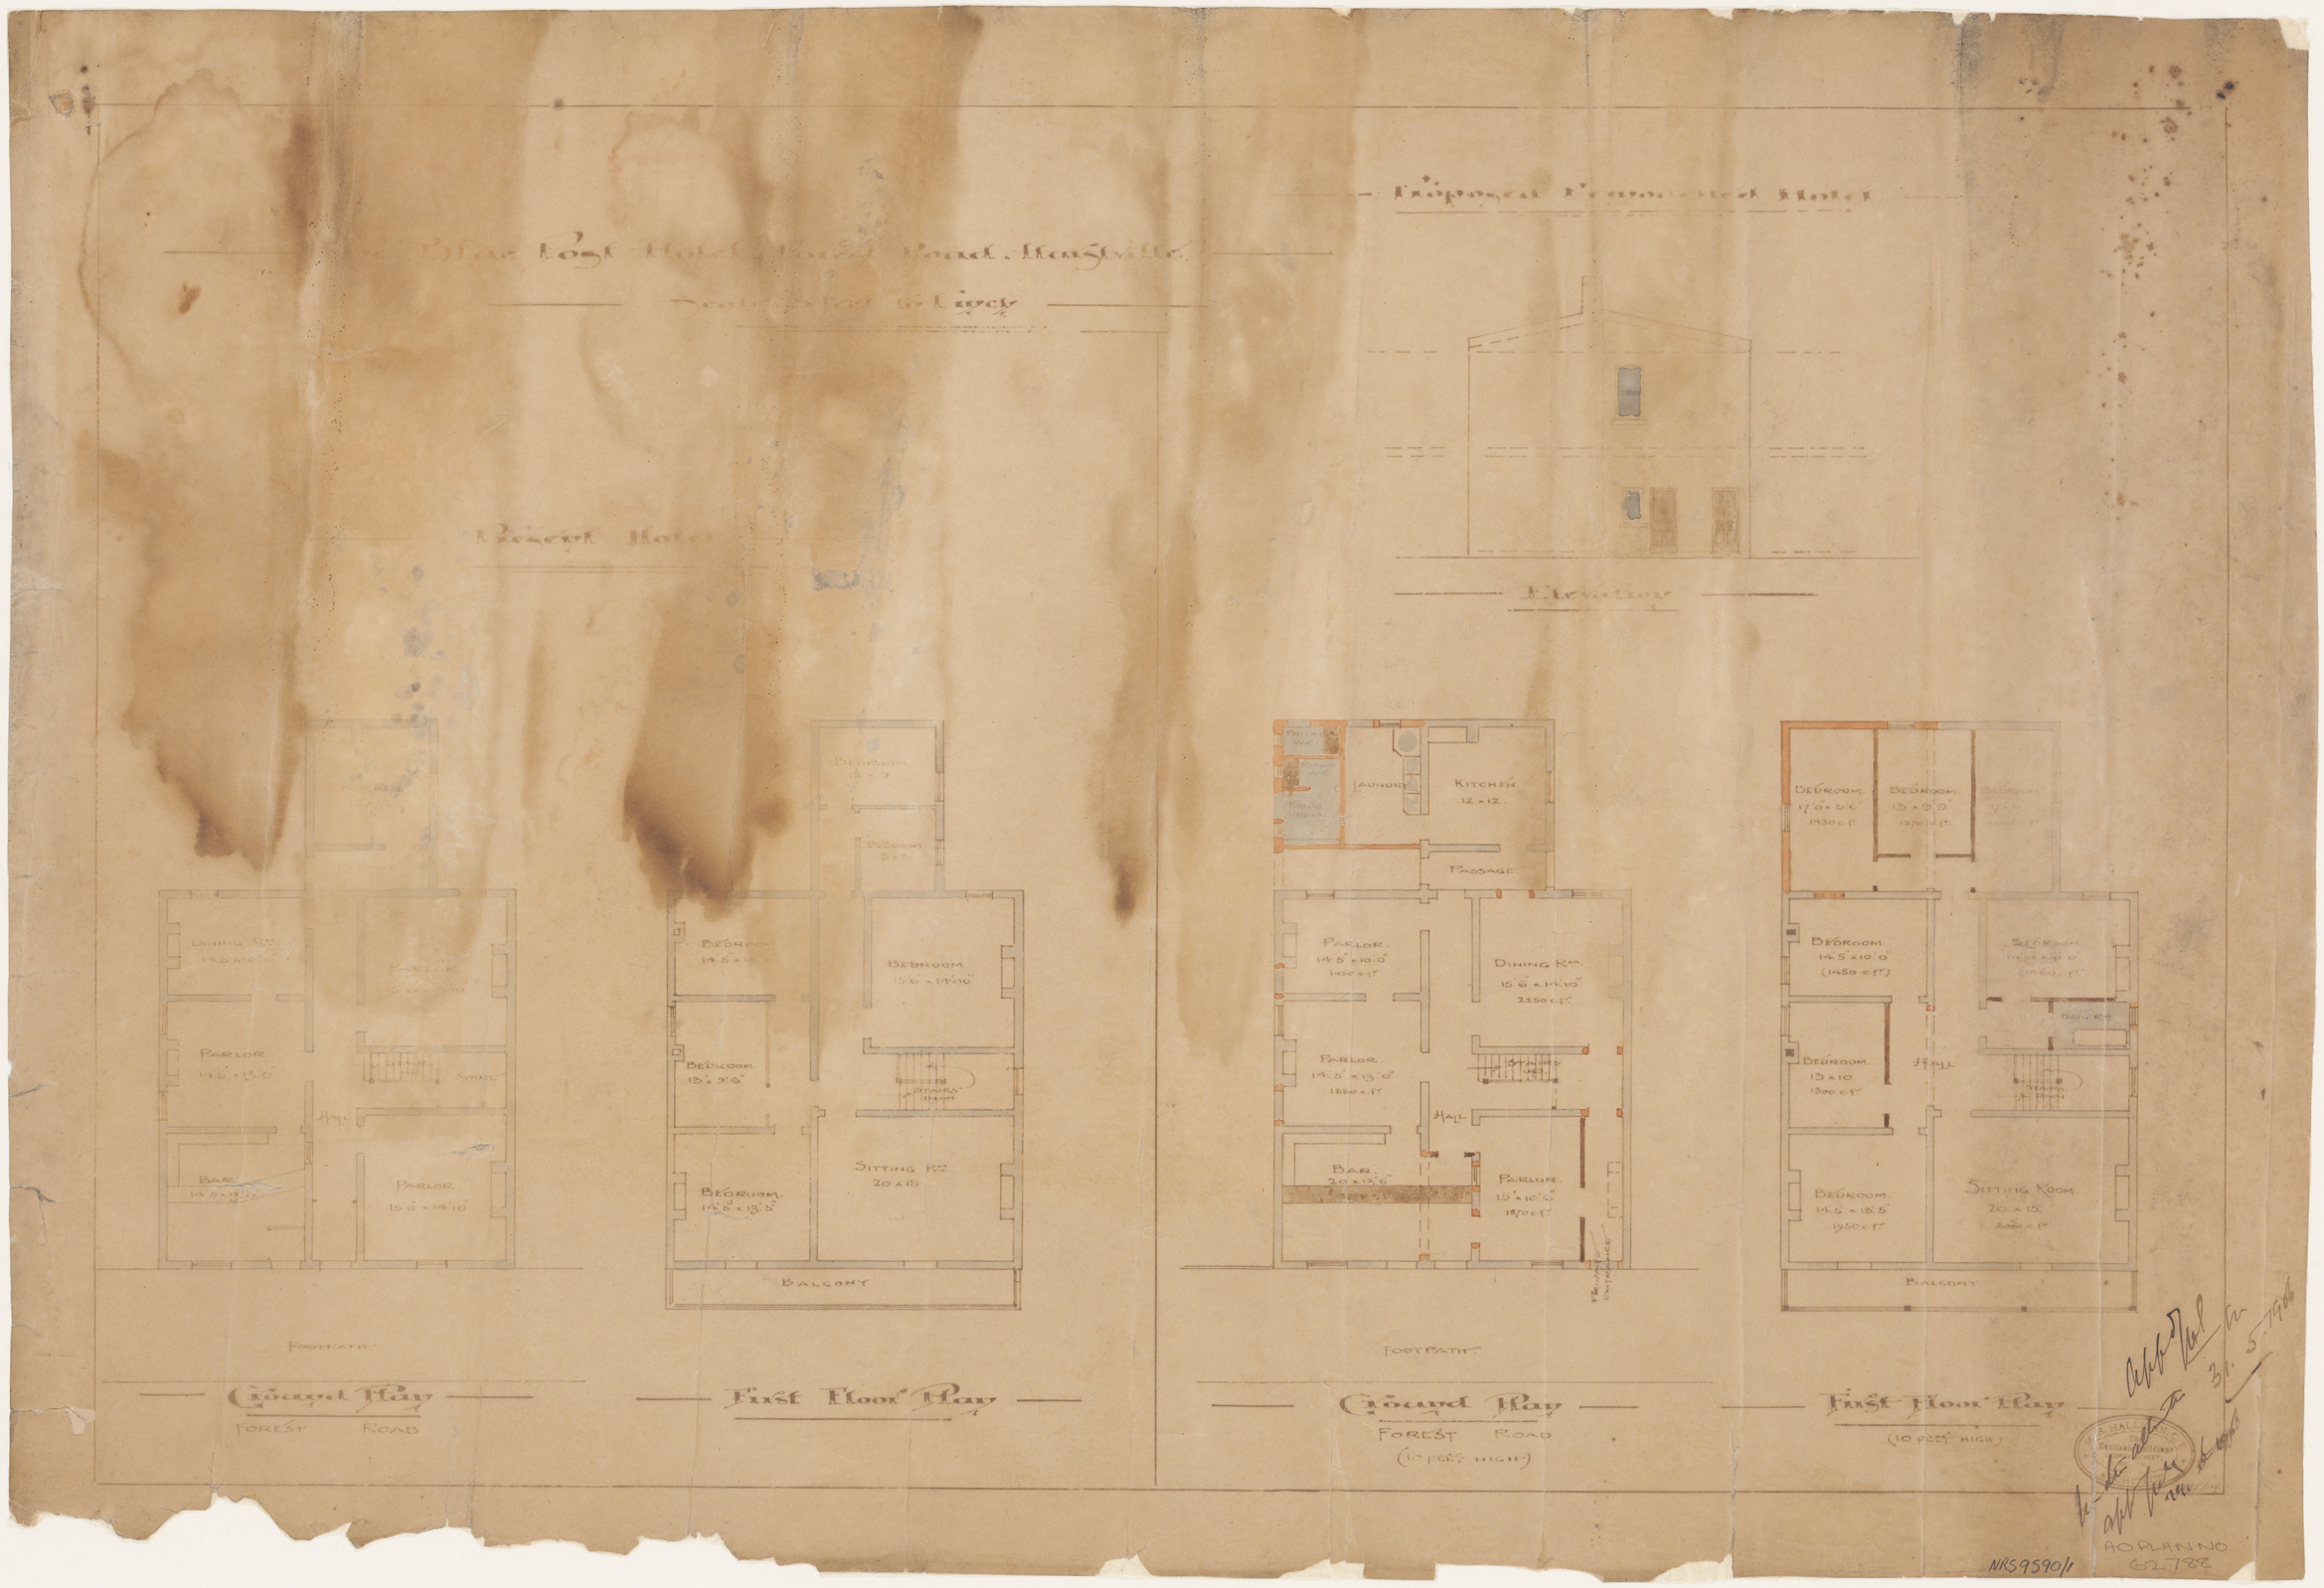 Blue Post Hotel, Forest Road, Hurstville, Plan for remodelled hotel, present and proposed ground and first floor plans, proposed elevation, Applicant/owner, Tooth and Company, Architect M B Halliagan, Equitable Building, George Street, Signed 29 May 1903 and 31 May 1906